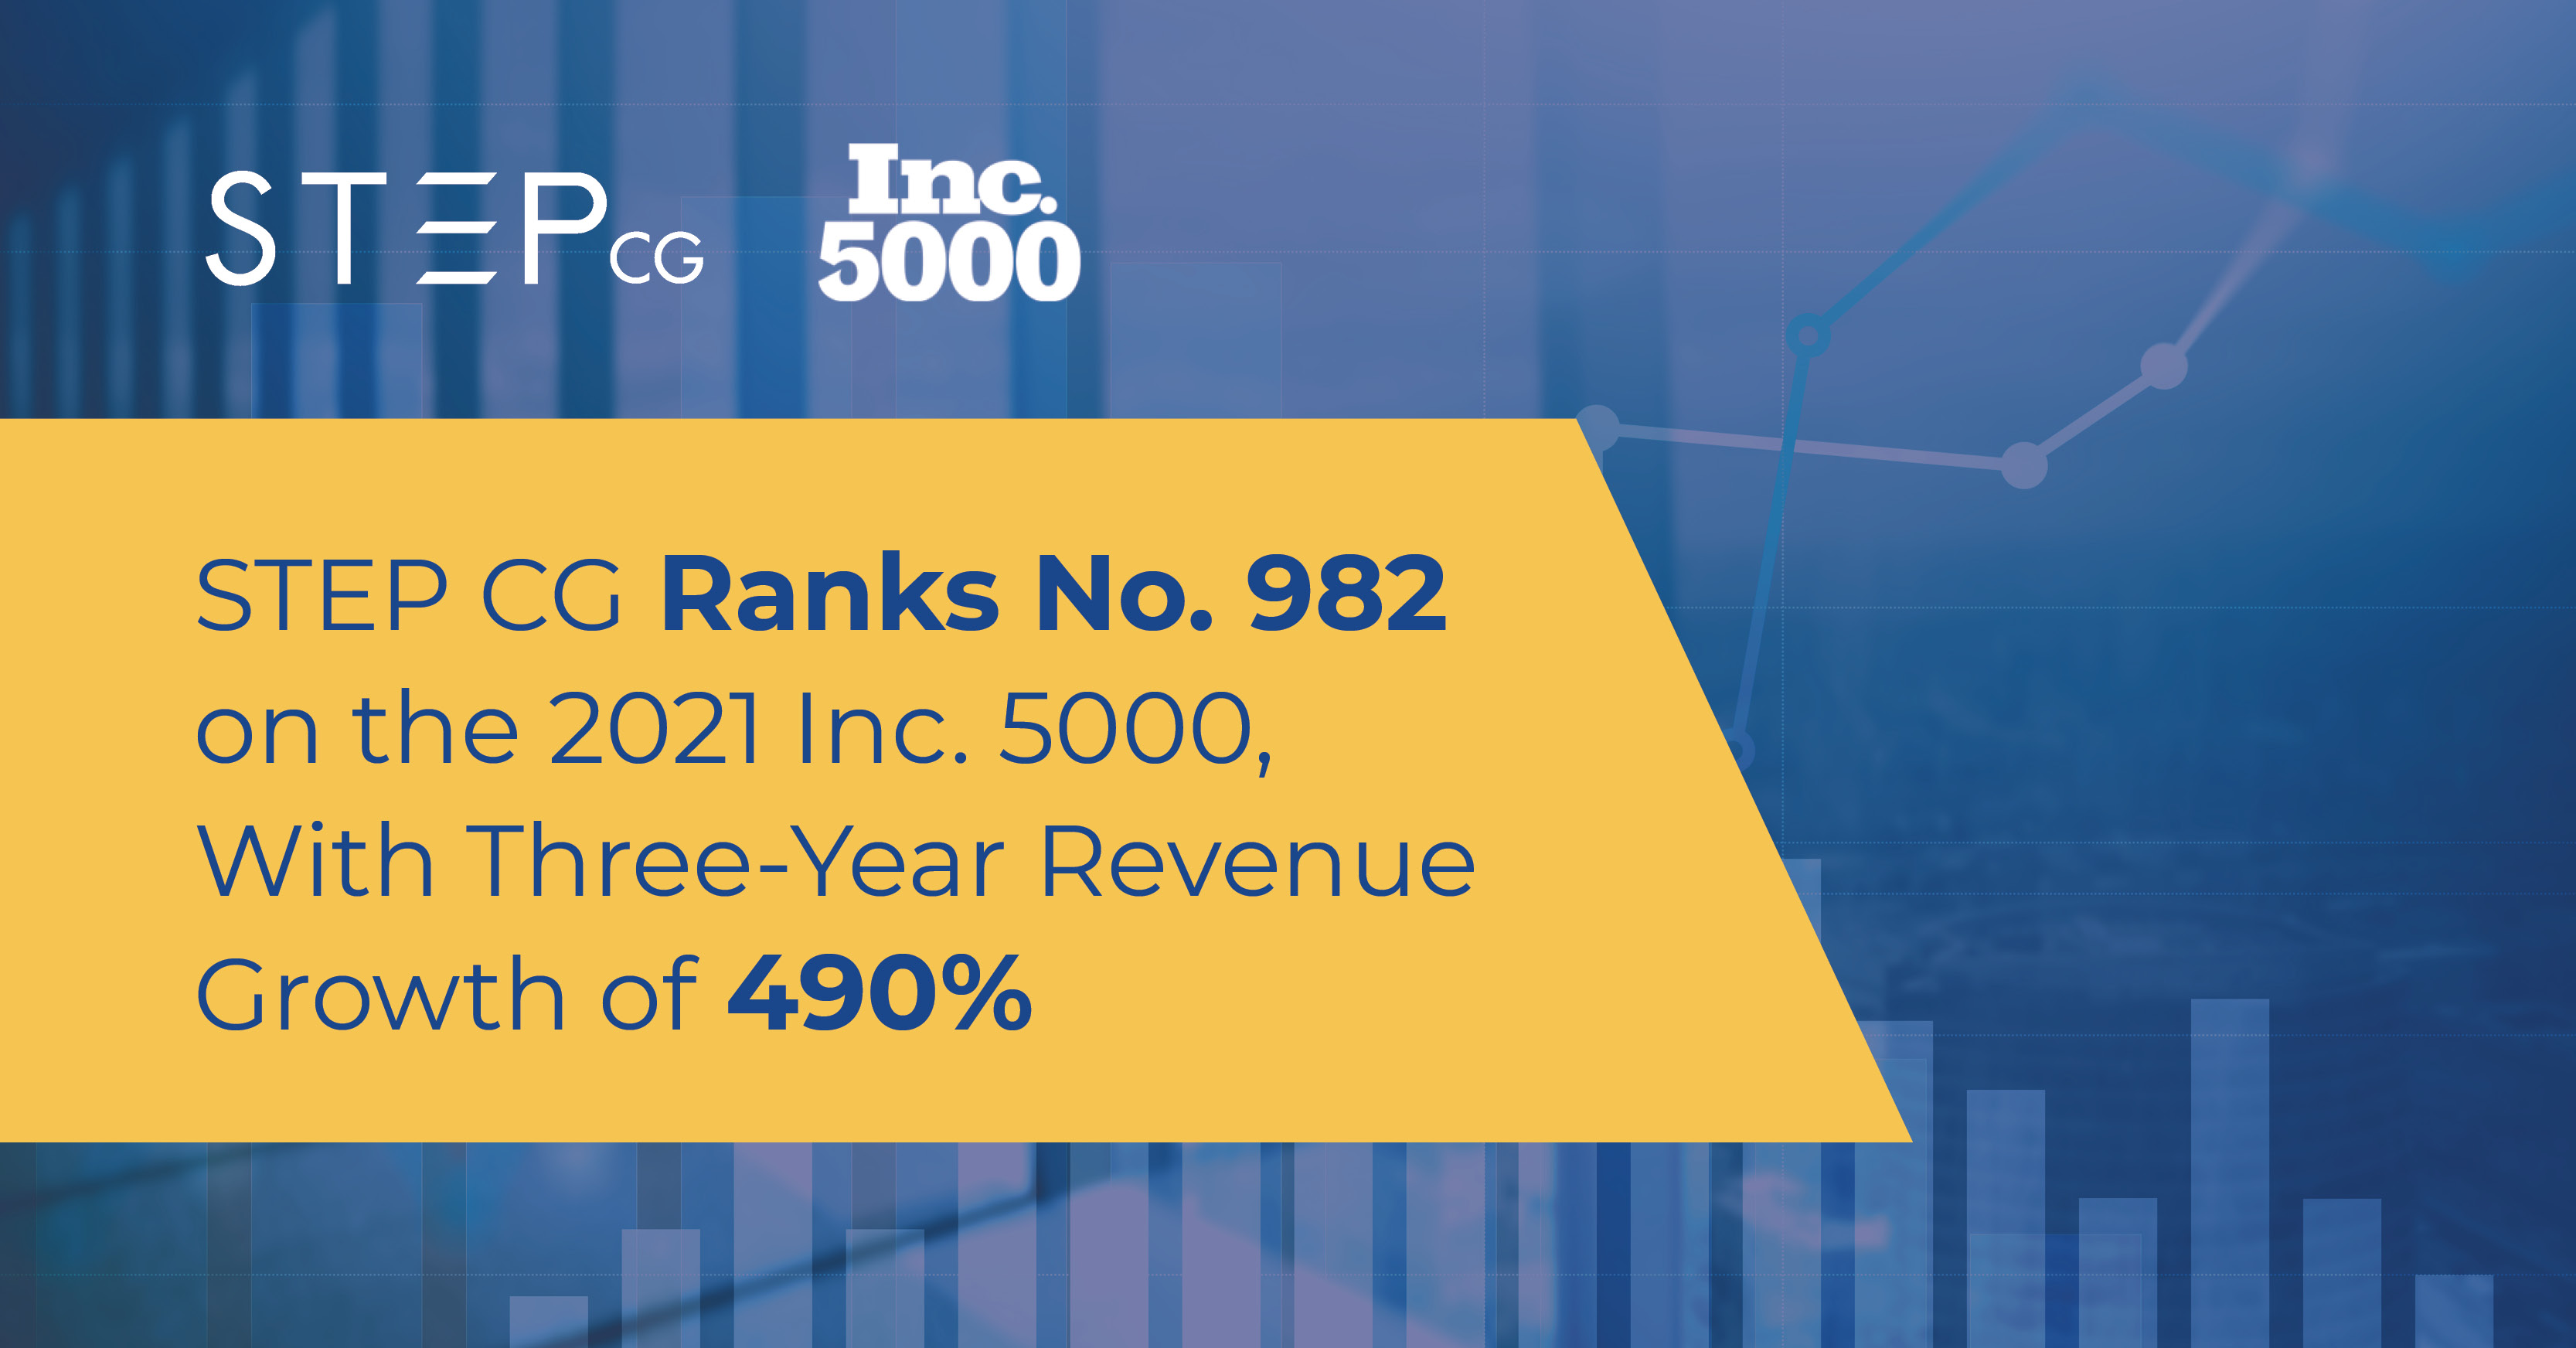 STEP CG Ranks No. 982 on the 2021 Inc. 5000,  With Three-Year Revenue Growth of 490 Percent